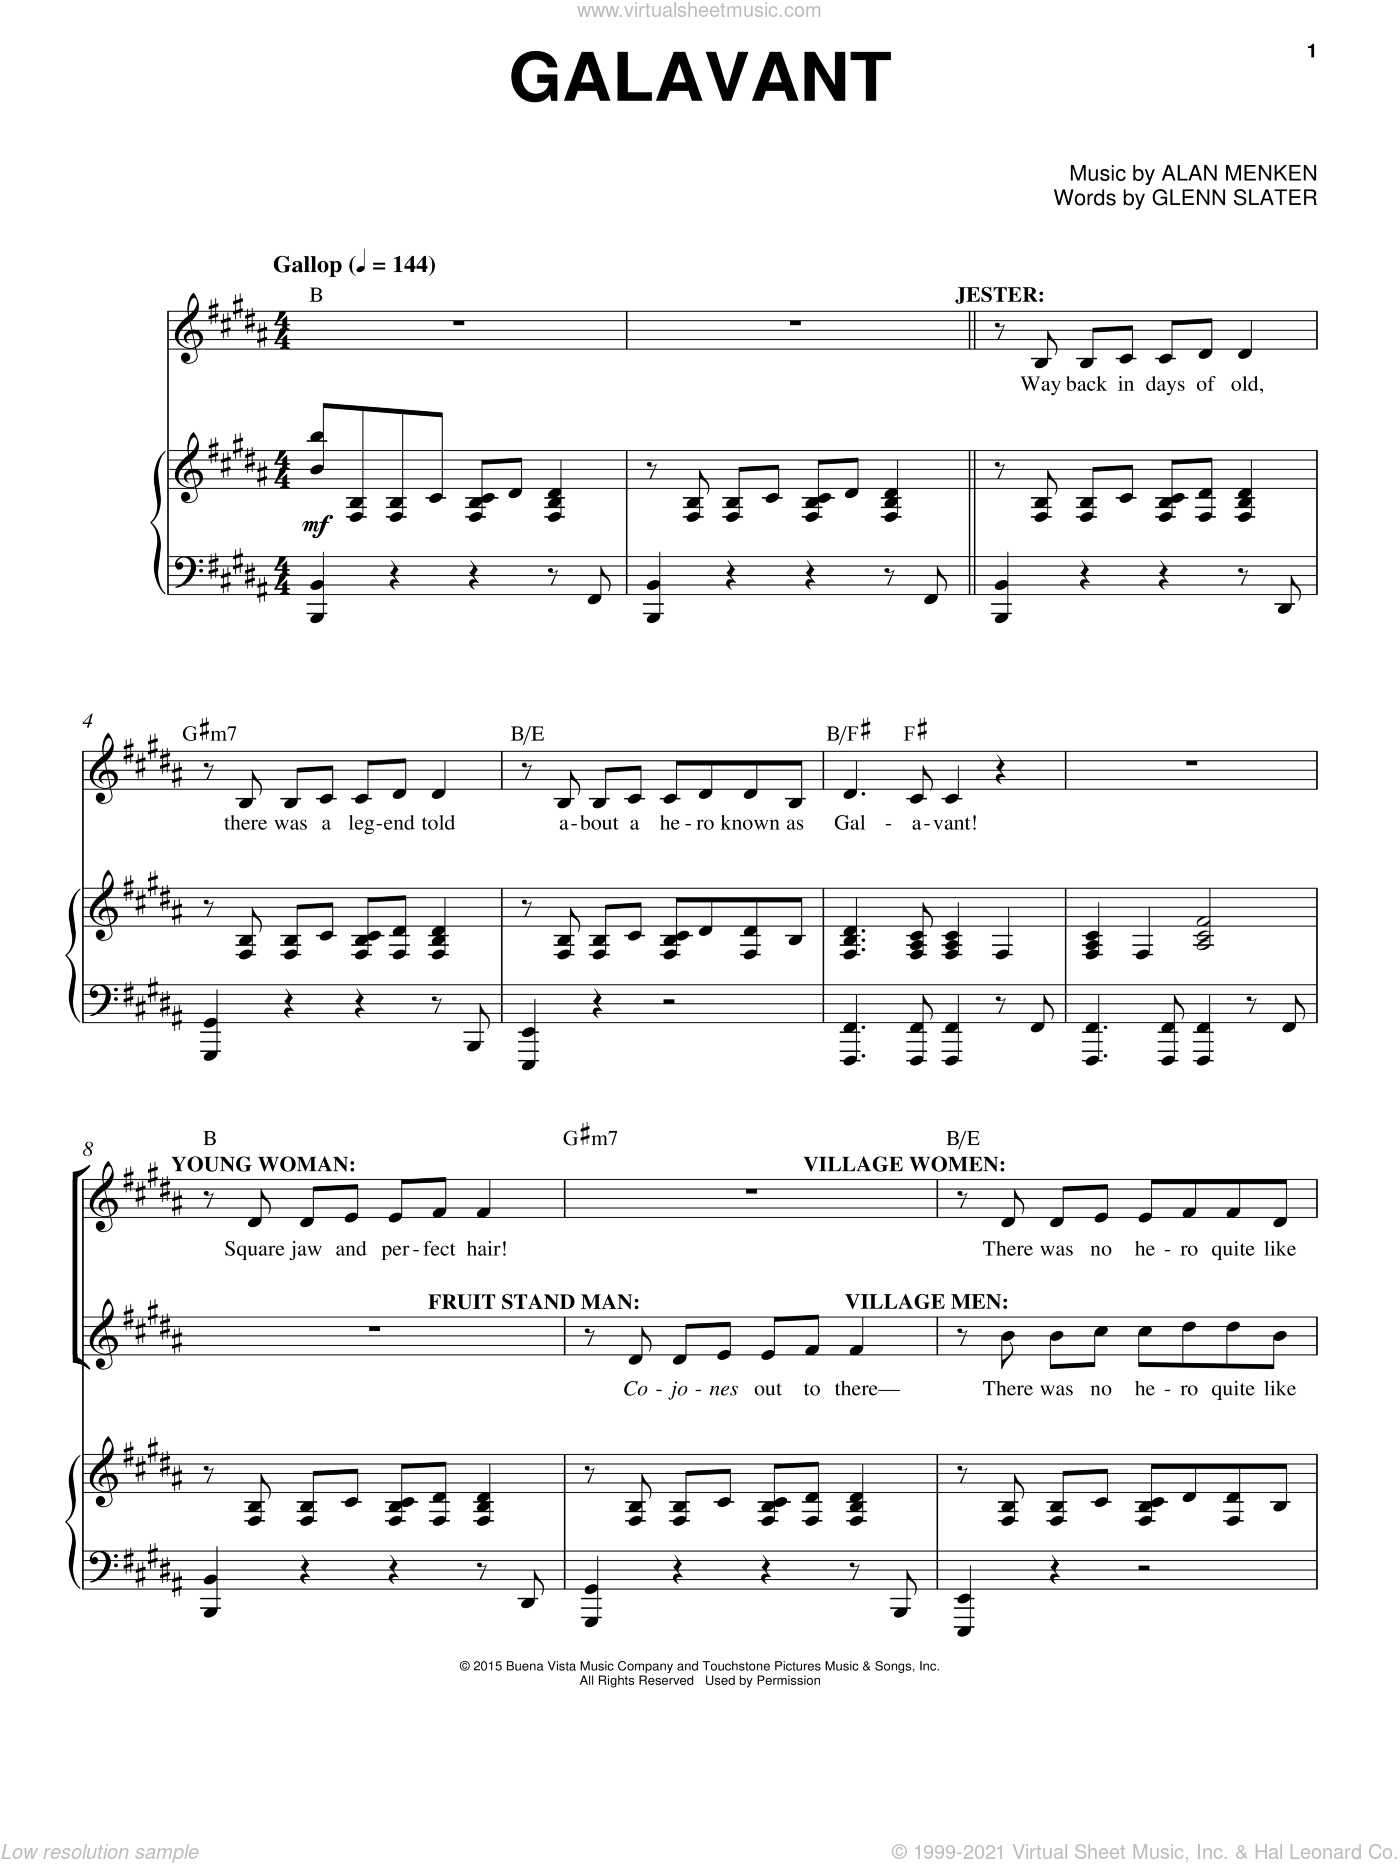 Galavant sheet music for voice and piano by Alan Menken and Glenn Slater, intermediate skill level